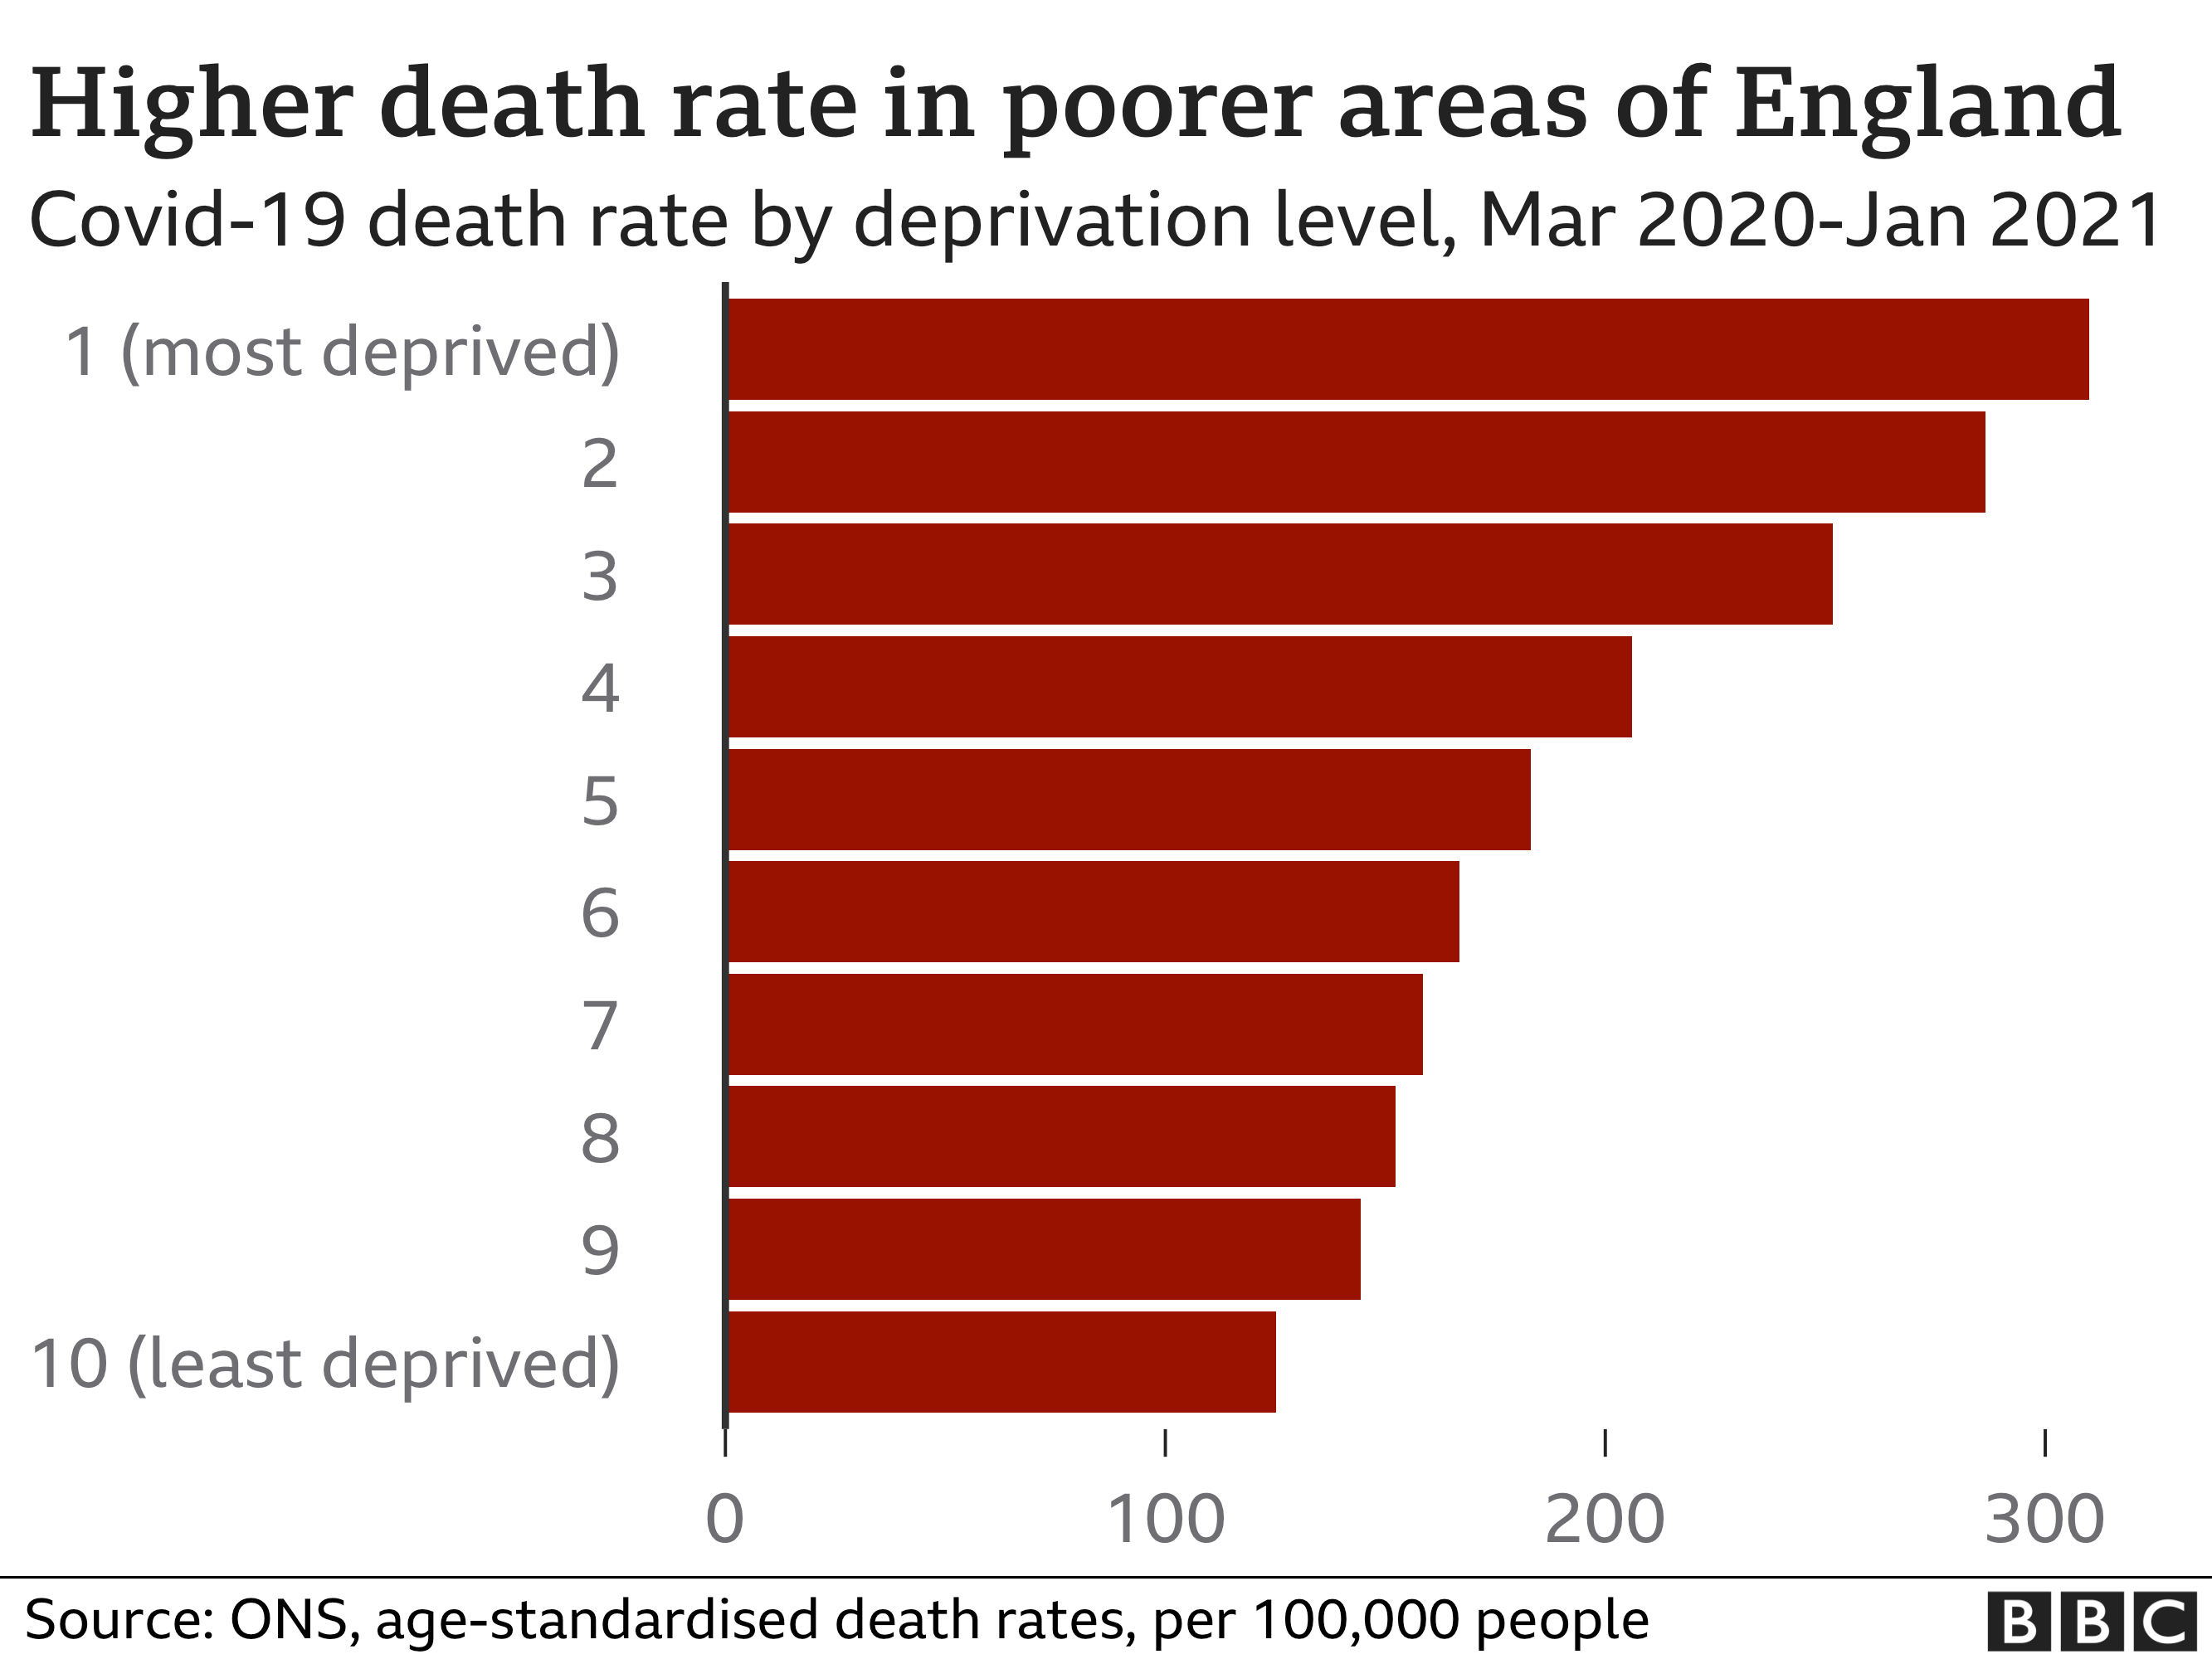 Bar chart showing death rates from Covid-19 are higher in more deprived areas